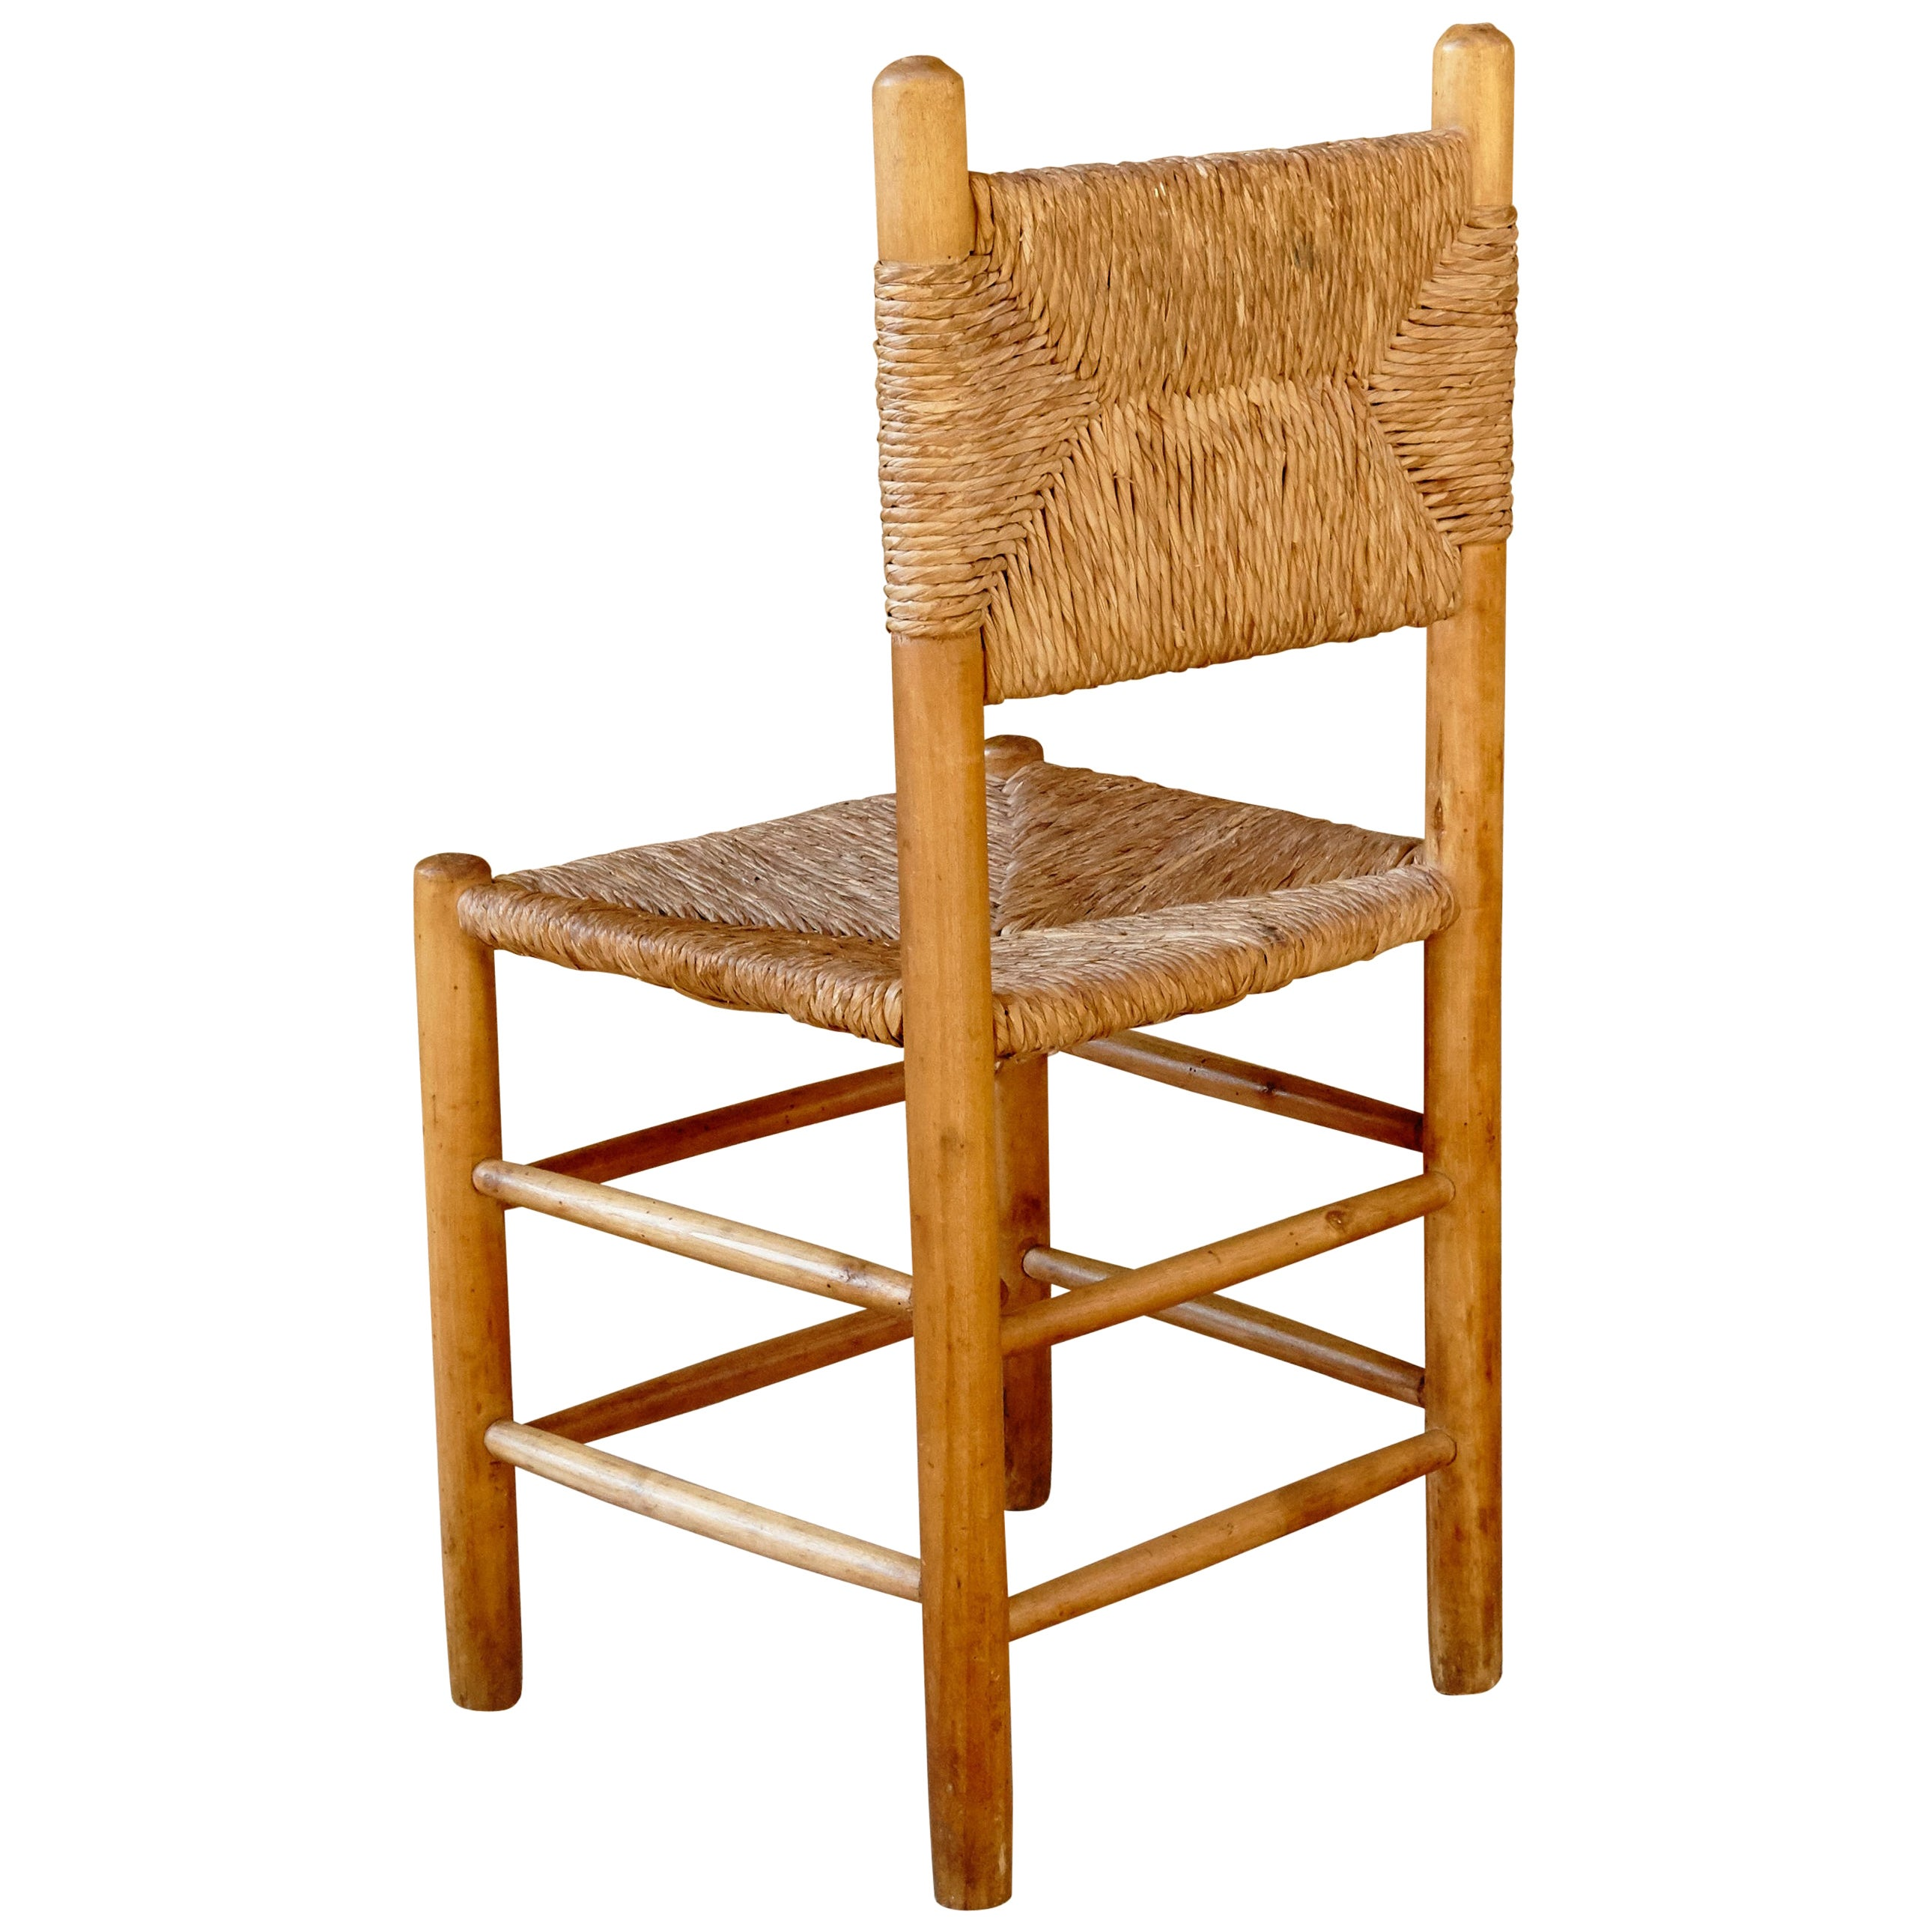 Chair after Charlotte Perriand, Wood Rattan, Mid-Century Modern